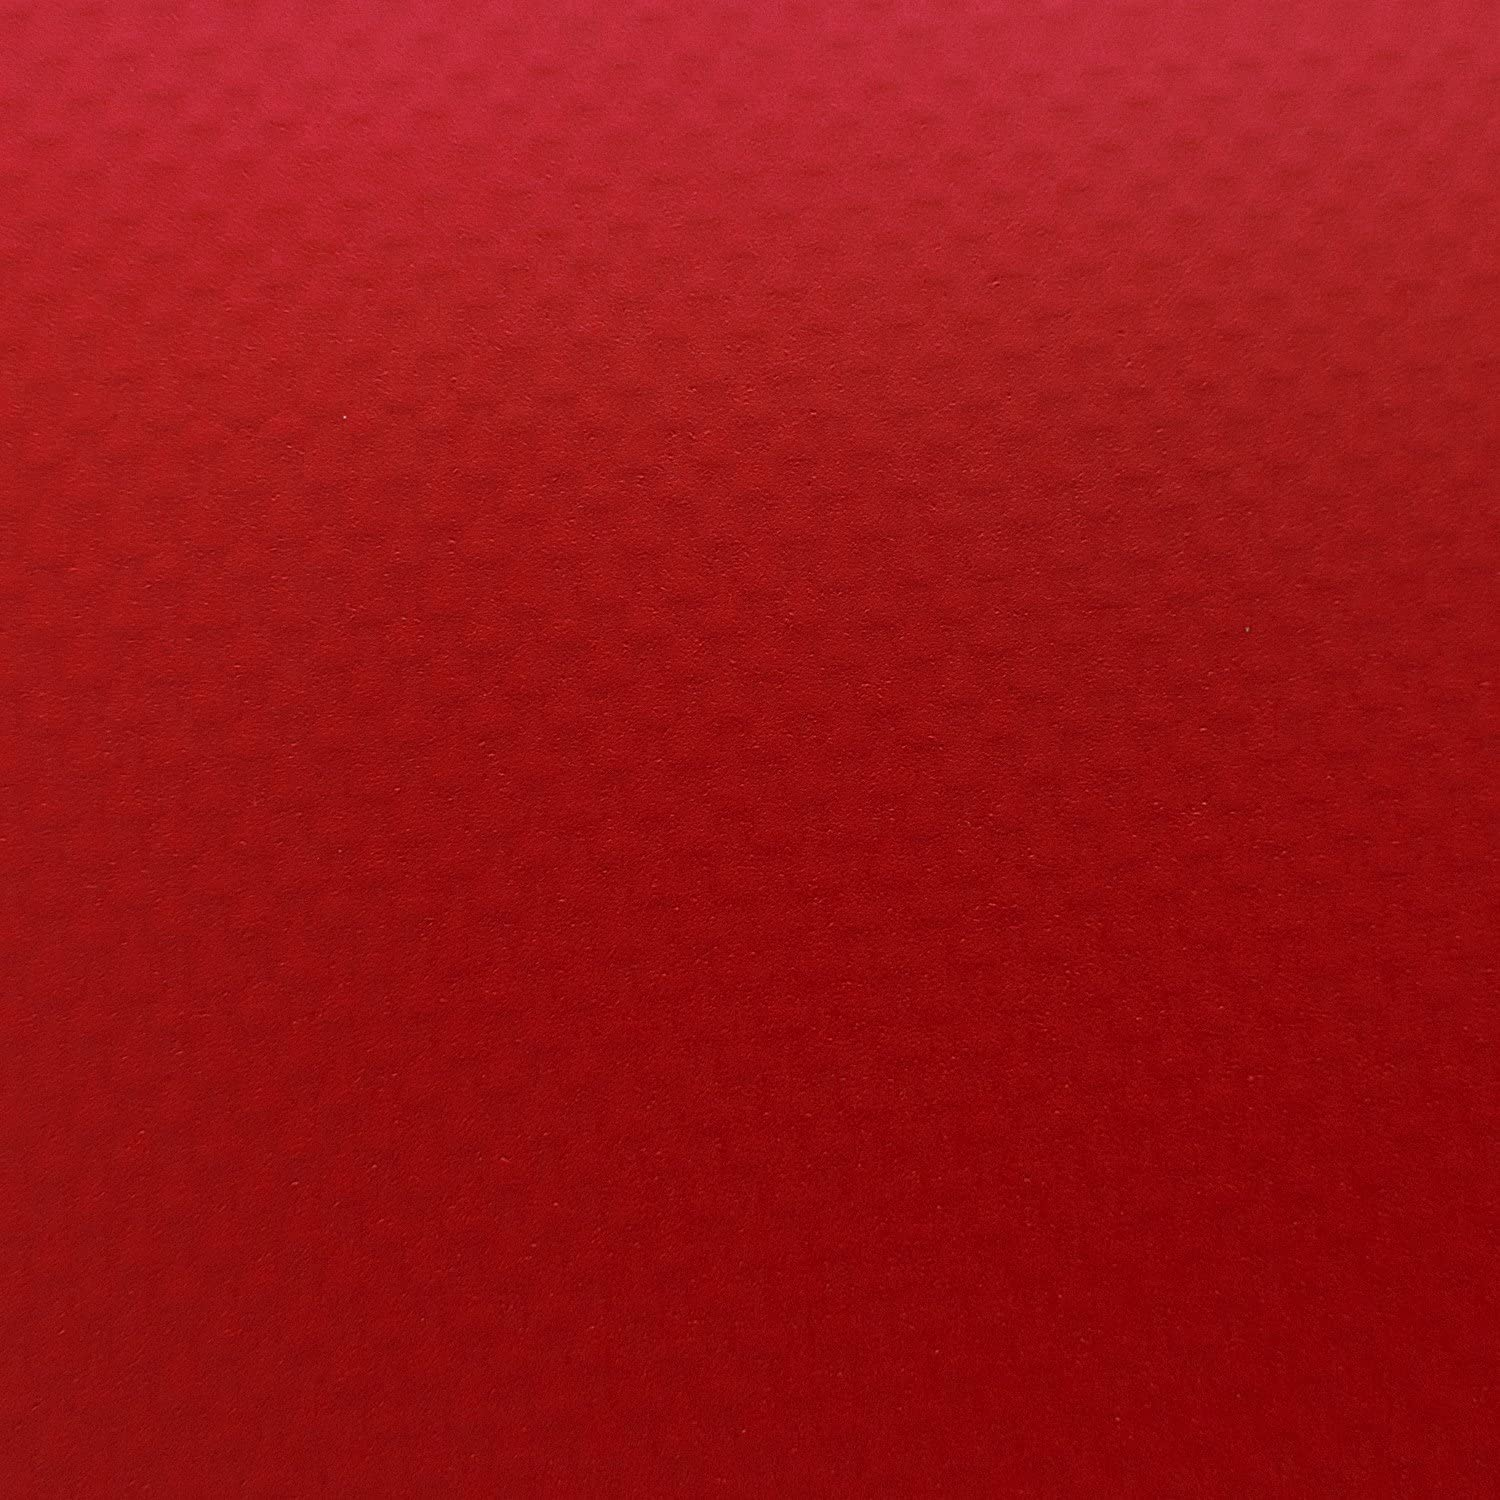 Triplon Vinyl Red Choice 72 Inch Wholesale Yards The by Mail order cheap F.E. Roll 50